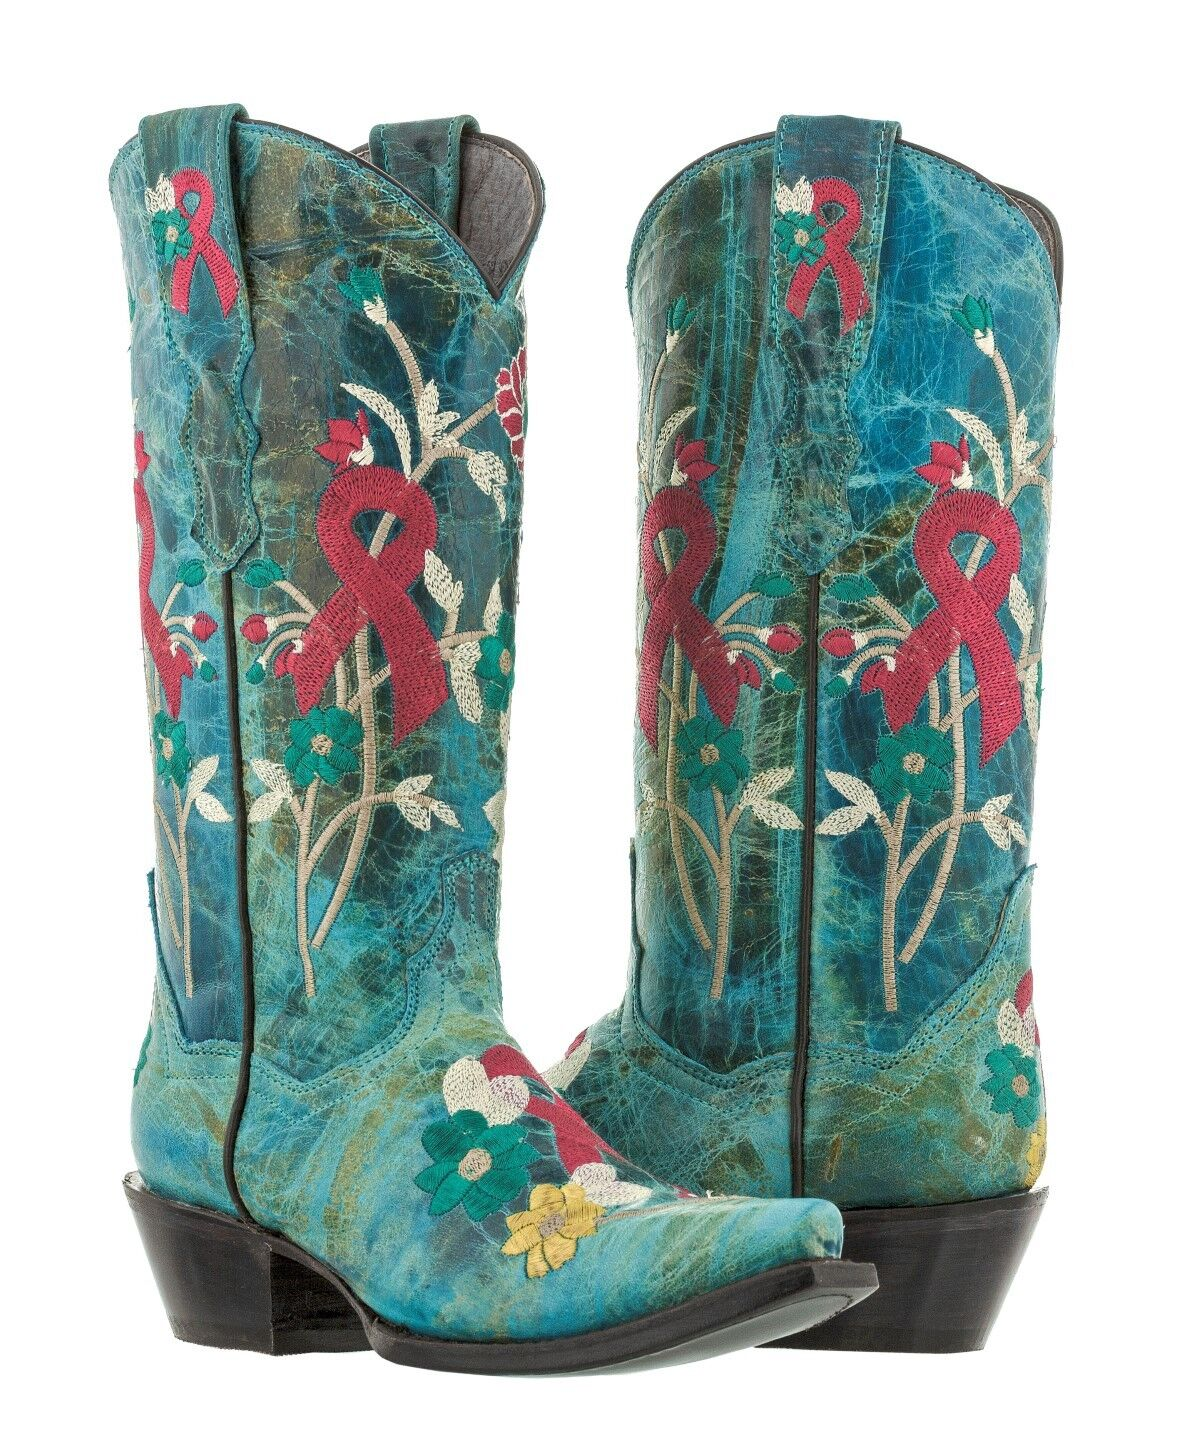 Womens Boots Turquoise Breast Cancer Awareness Ribbon Embroidered Cowgirl Boots Womens Snip 7c4b9c